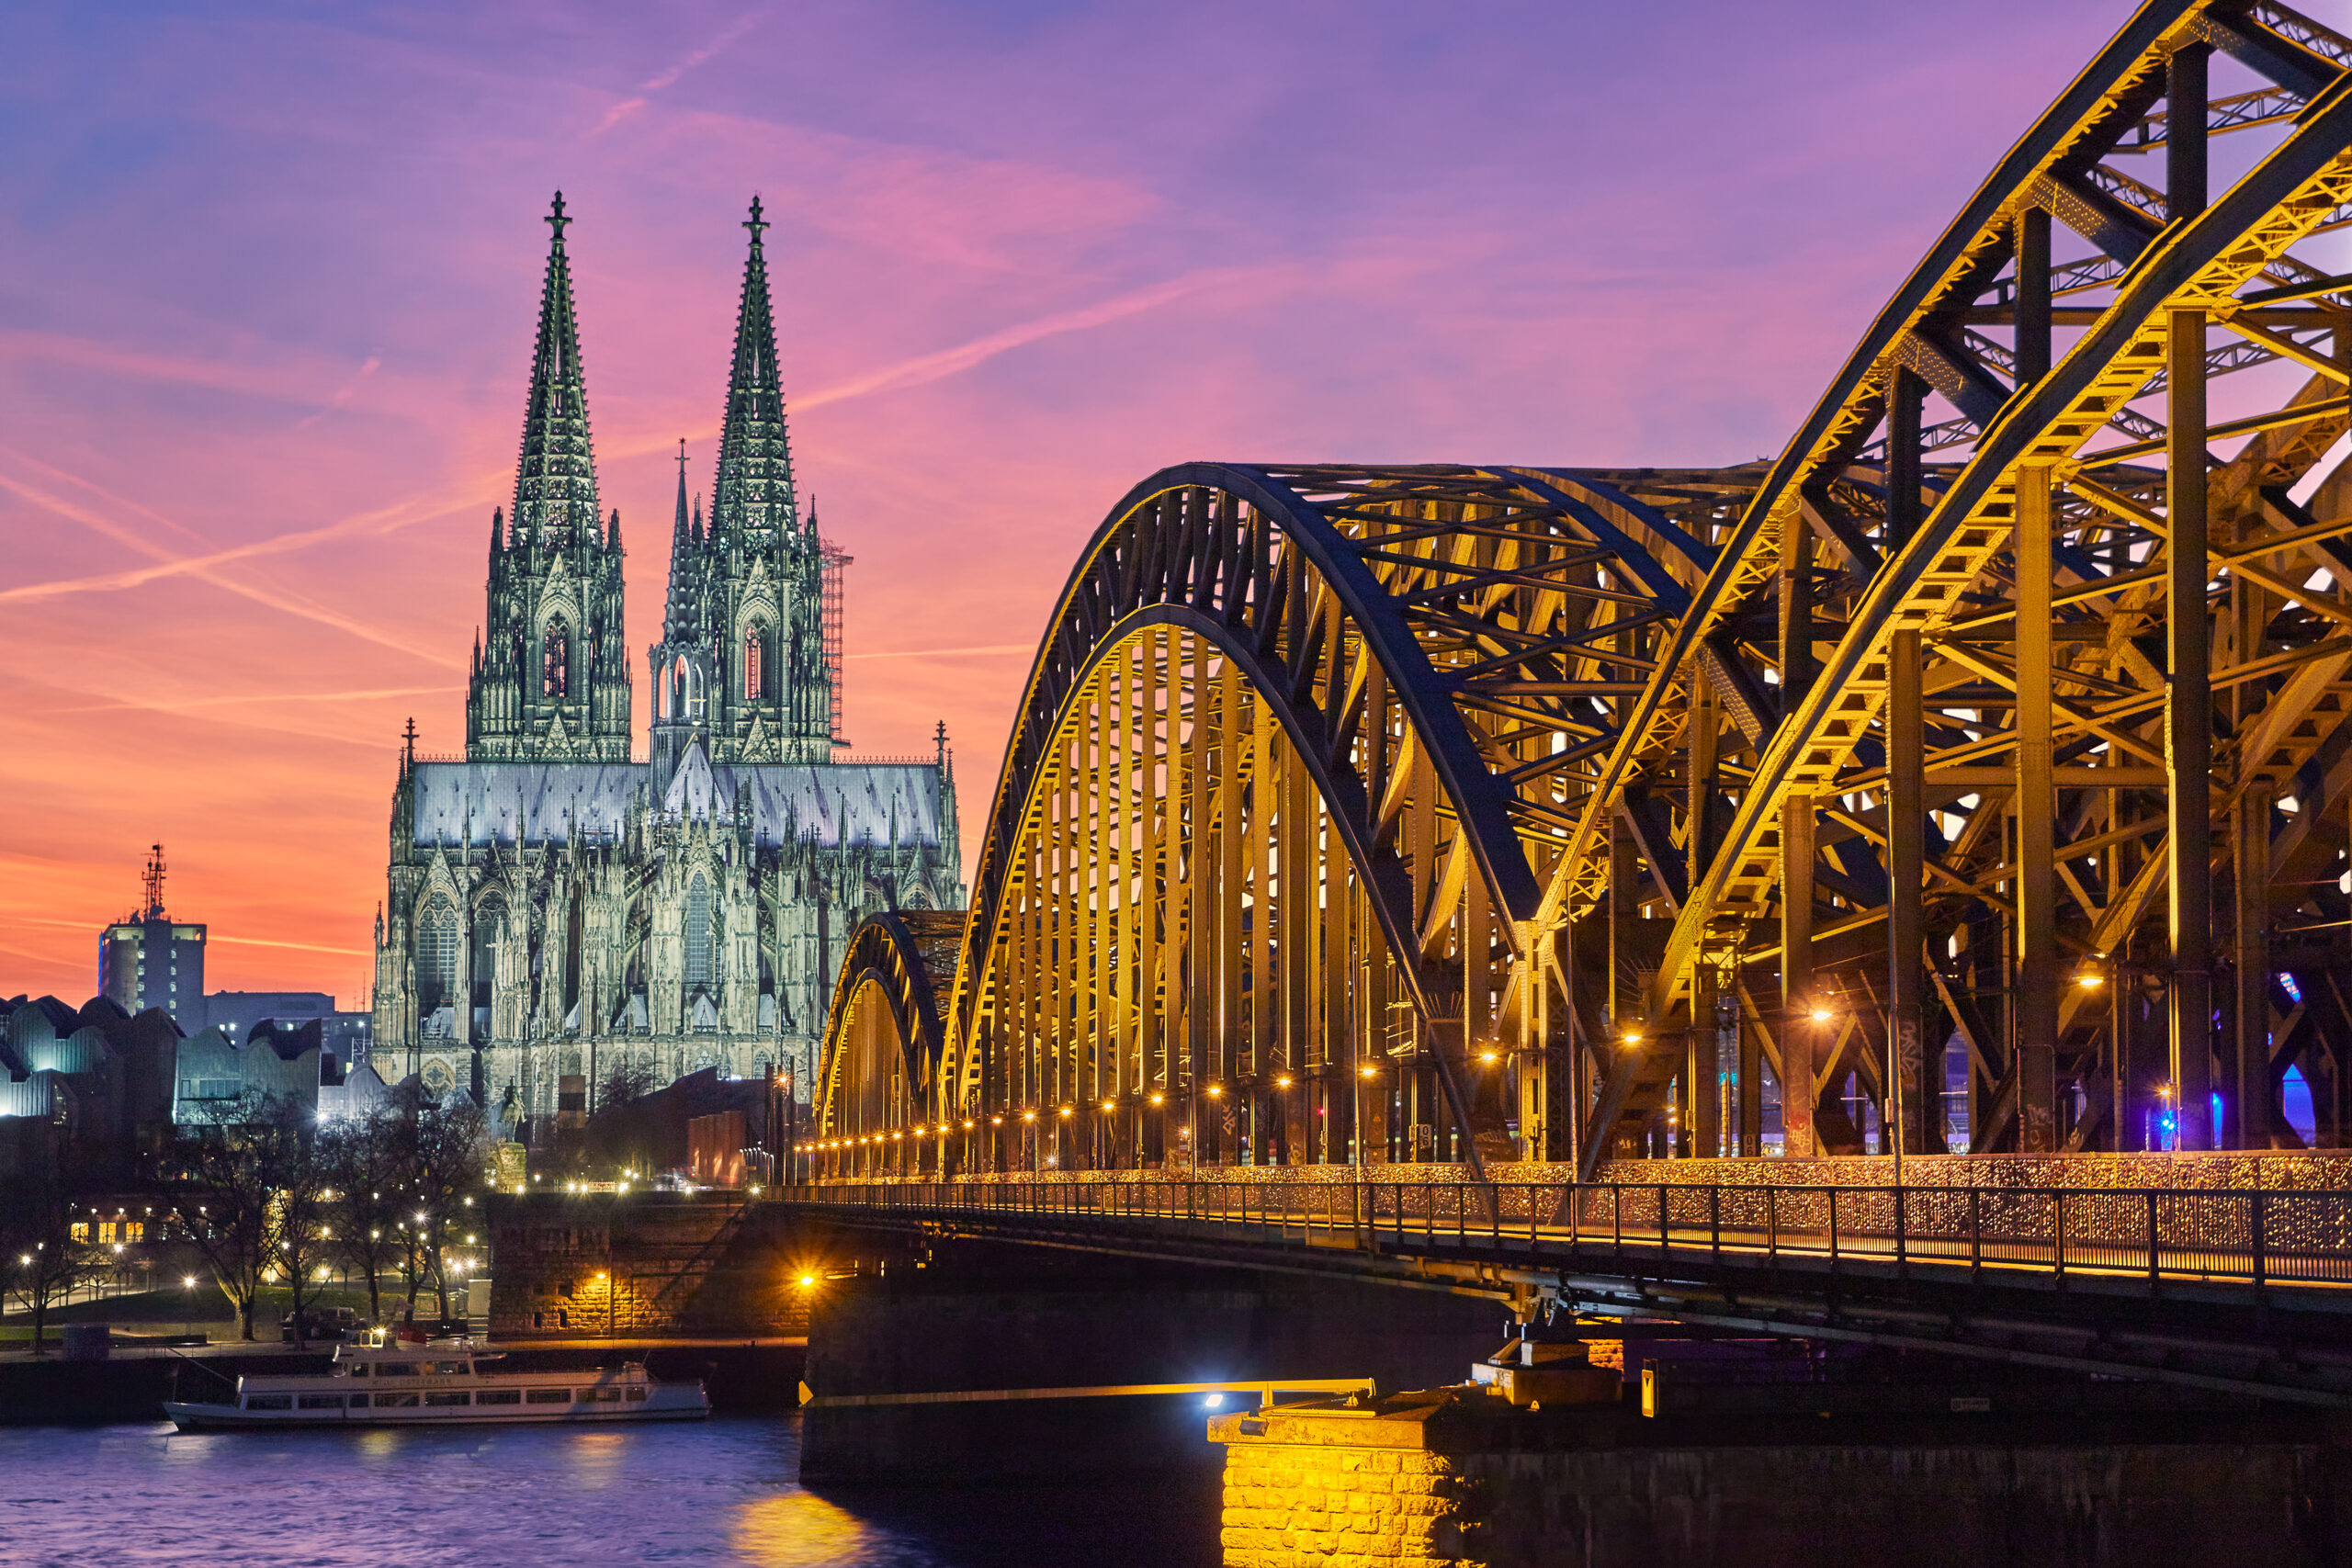 Tourist Attractions in Germany like Cologne Cathedral and Hohenzollern Bridge